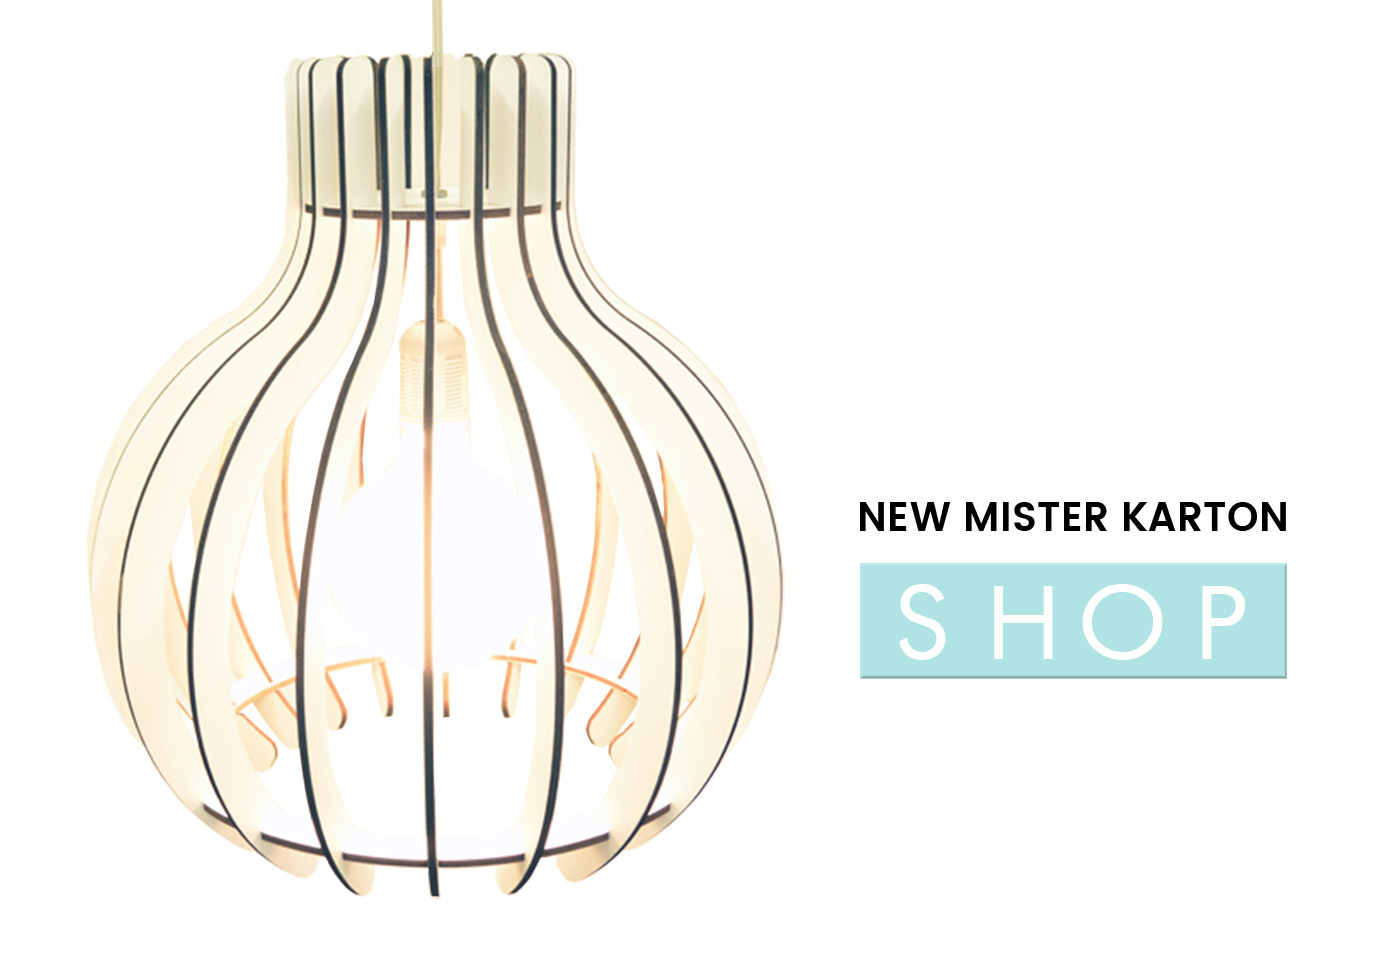 Casa Decoracion Shop Online New Mister Karton Shop Misterkarton